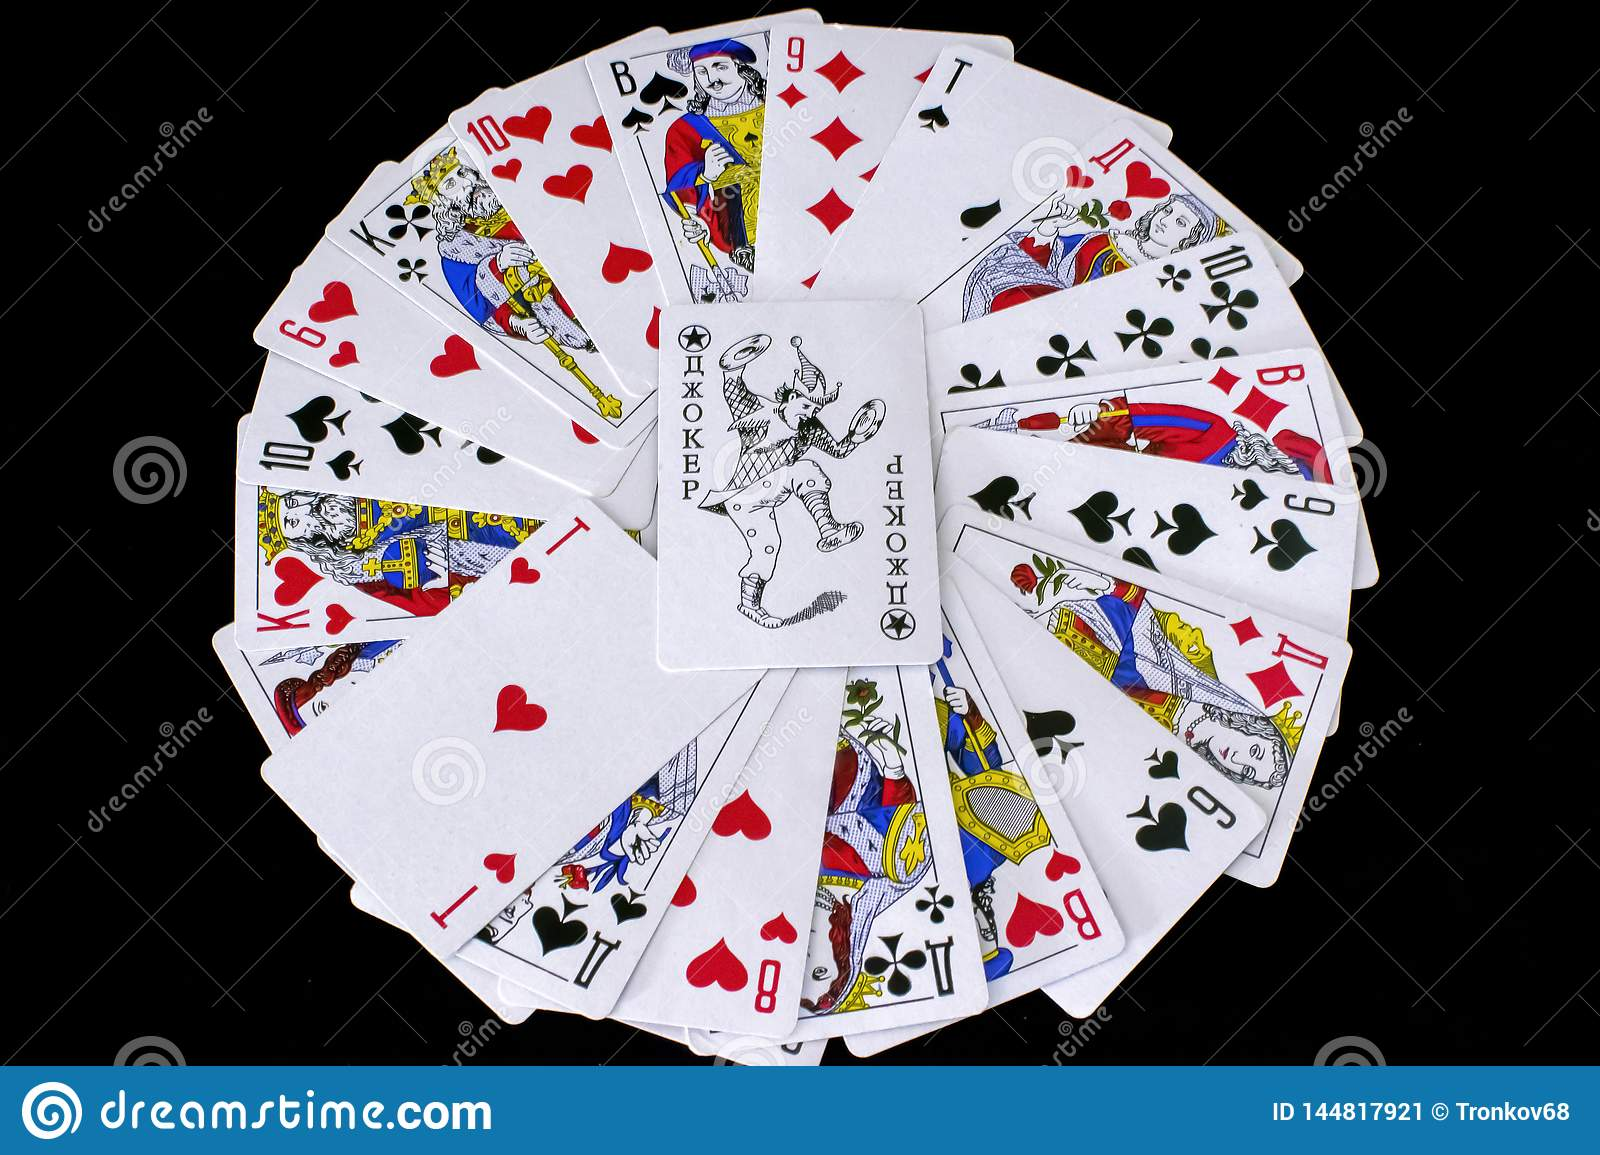 Playing cards on black background.